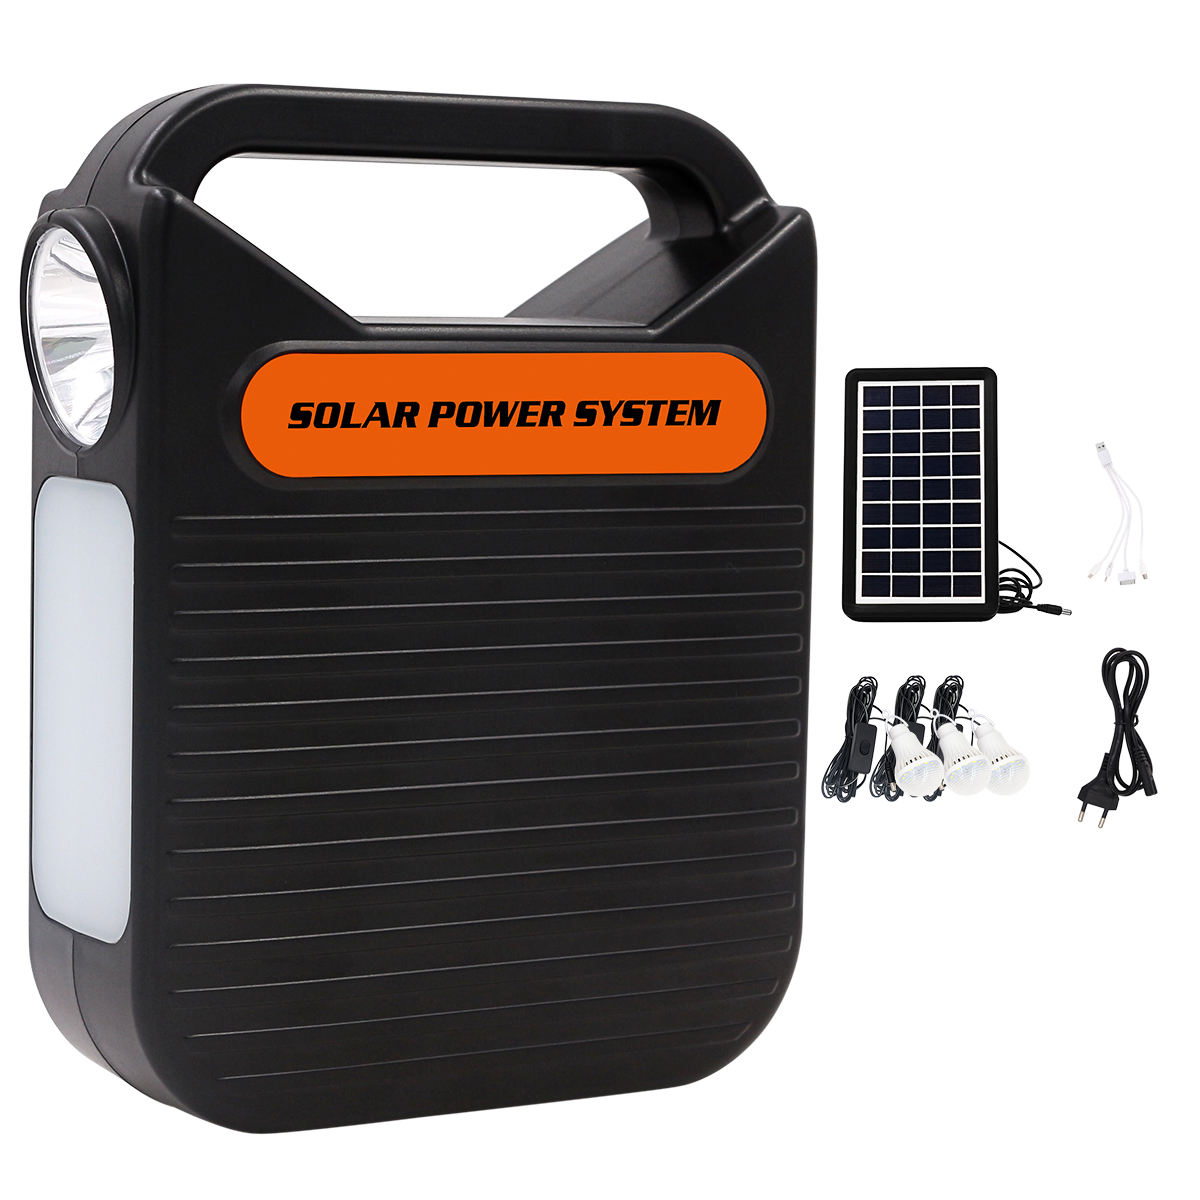 Hot Sale Portable Solar Lighting Power System with Solar Panel and bulbs